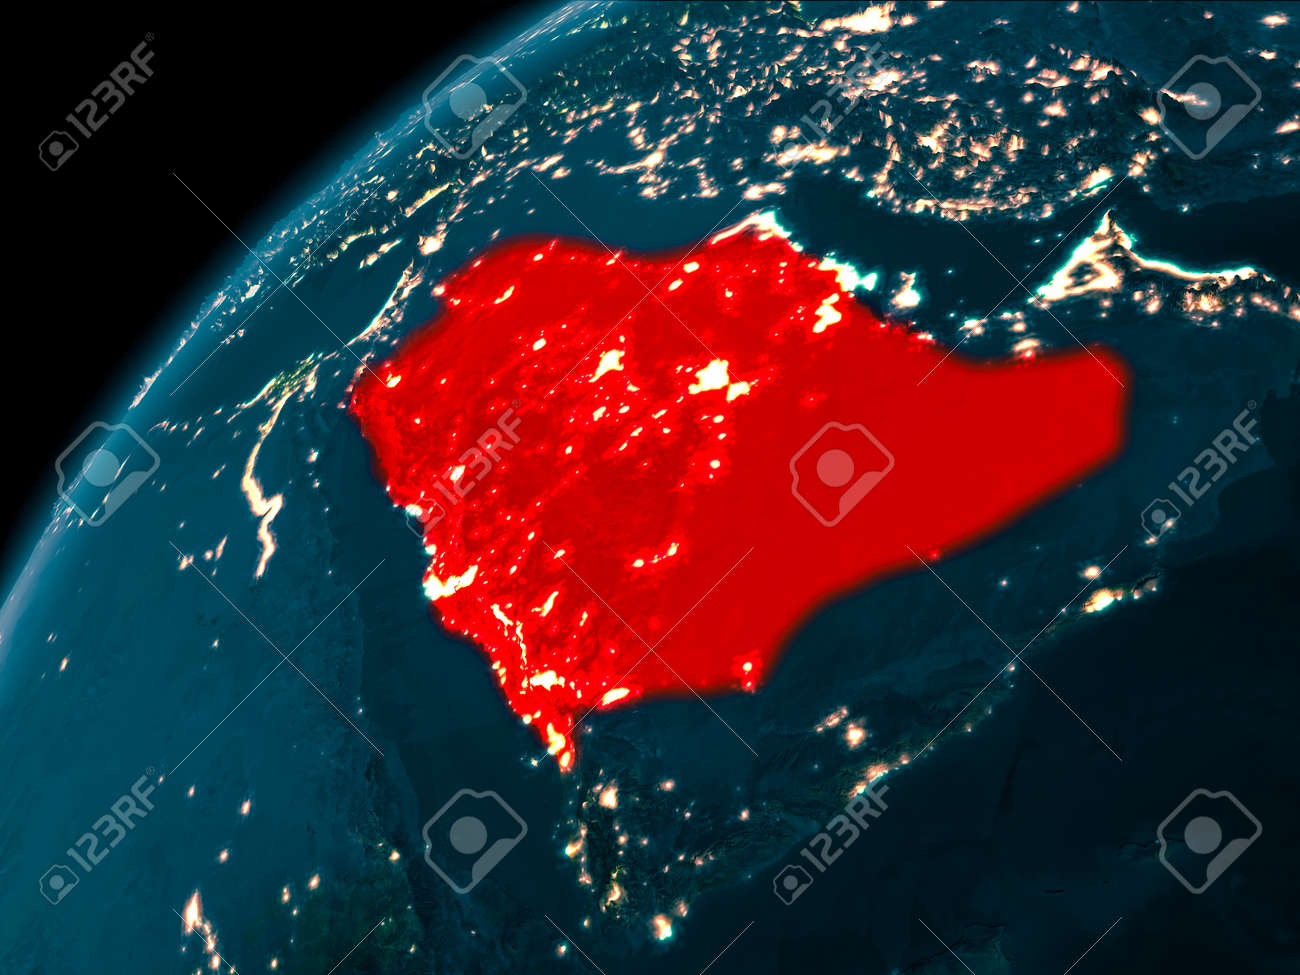 Night map of saudi arabia as seen from space on planet earth illustration night map of saudi arabia as seen from space on planet earth 3d illustration gumiabroncs Image collections